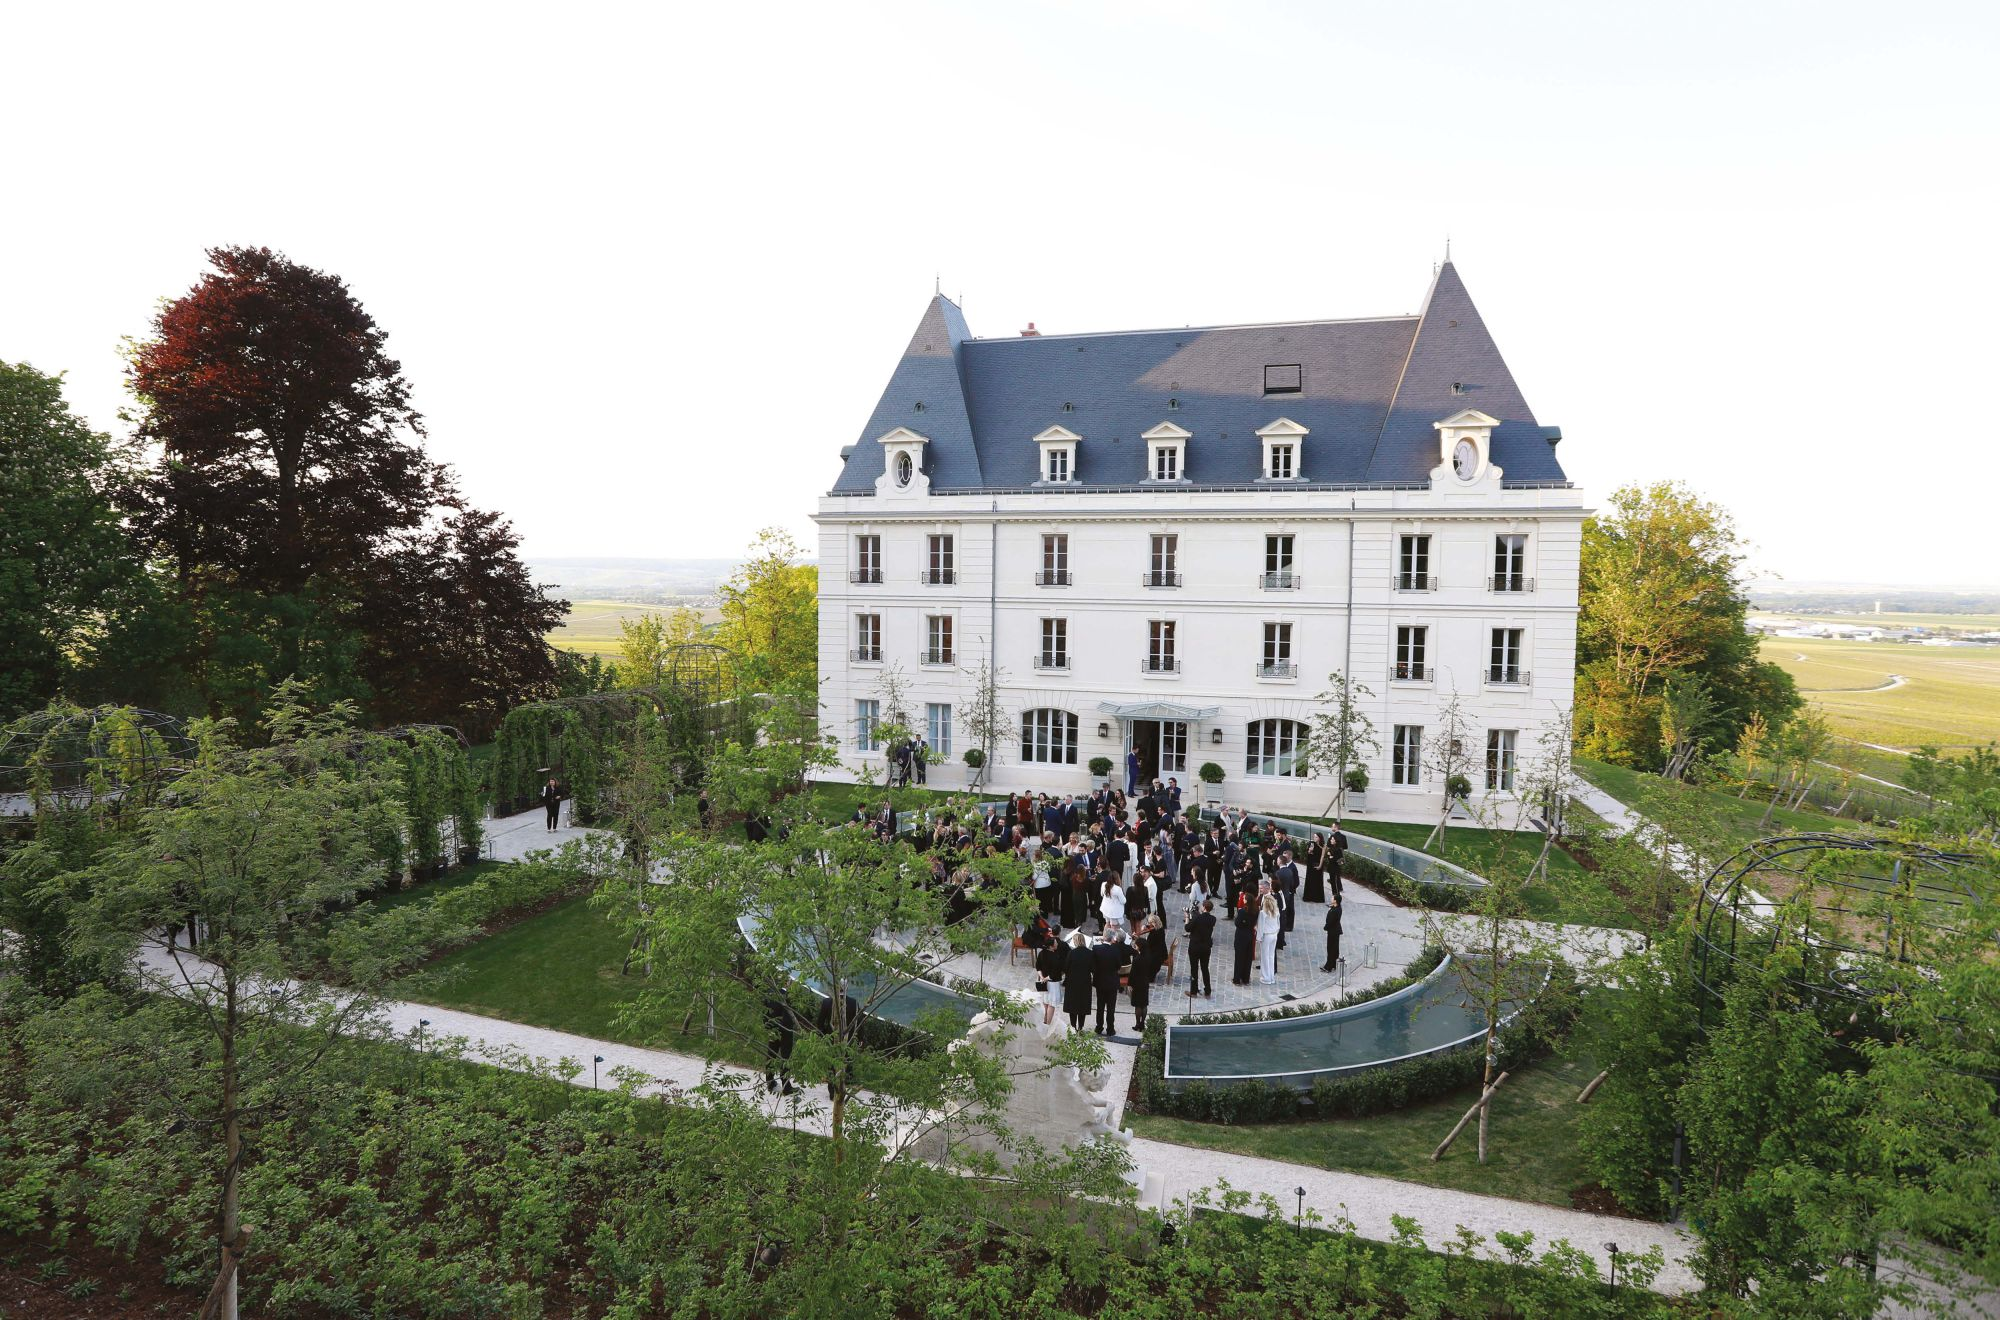 Moët et Chandon Has Transformed its Chateau de Saran Into an Invite-Only Luxury Hotel